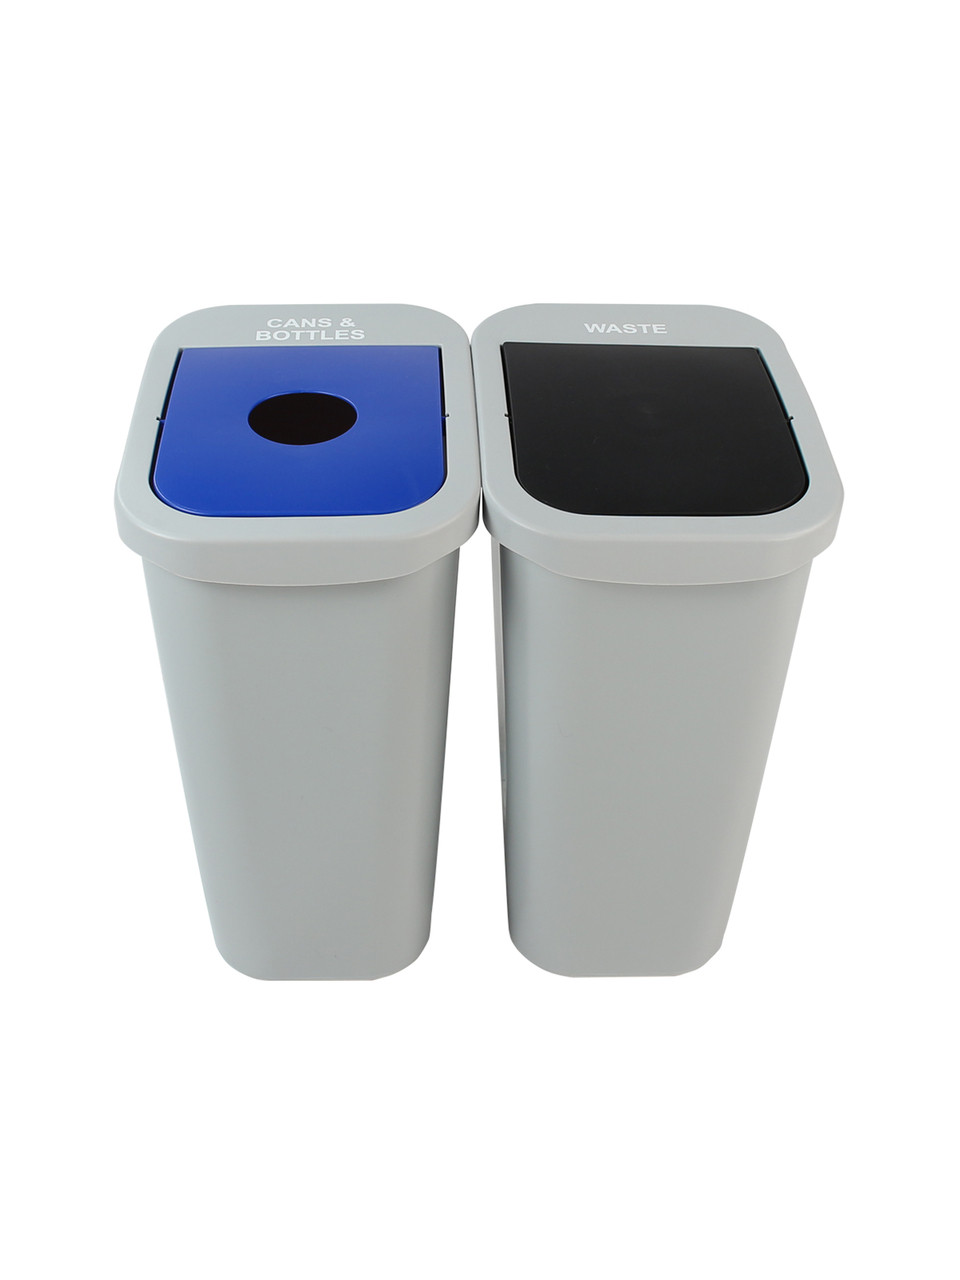 20 Gallon Billi Box Double Trash Can Recycle Bin Combo 8102025-14 (Cans, Waste Swing Lid)